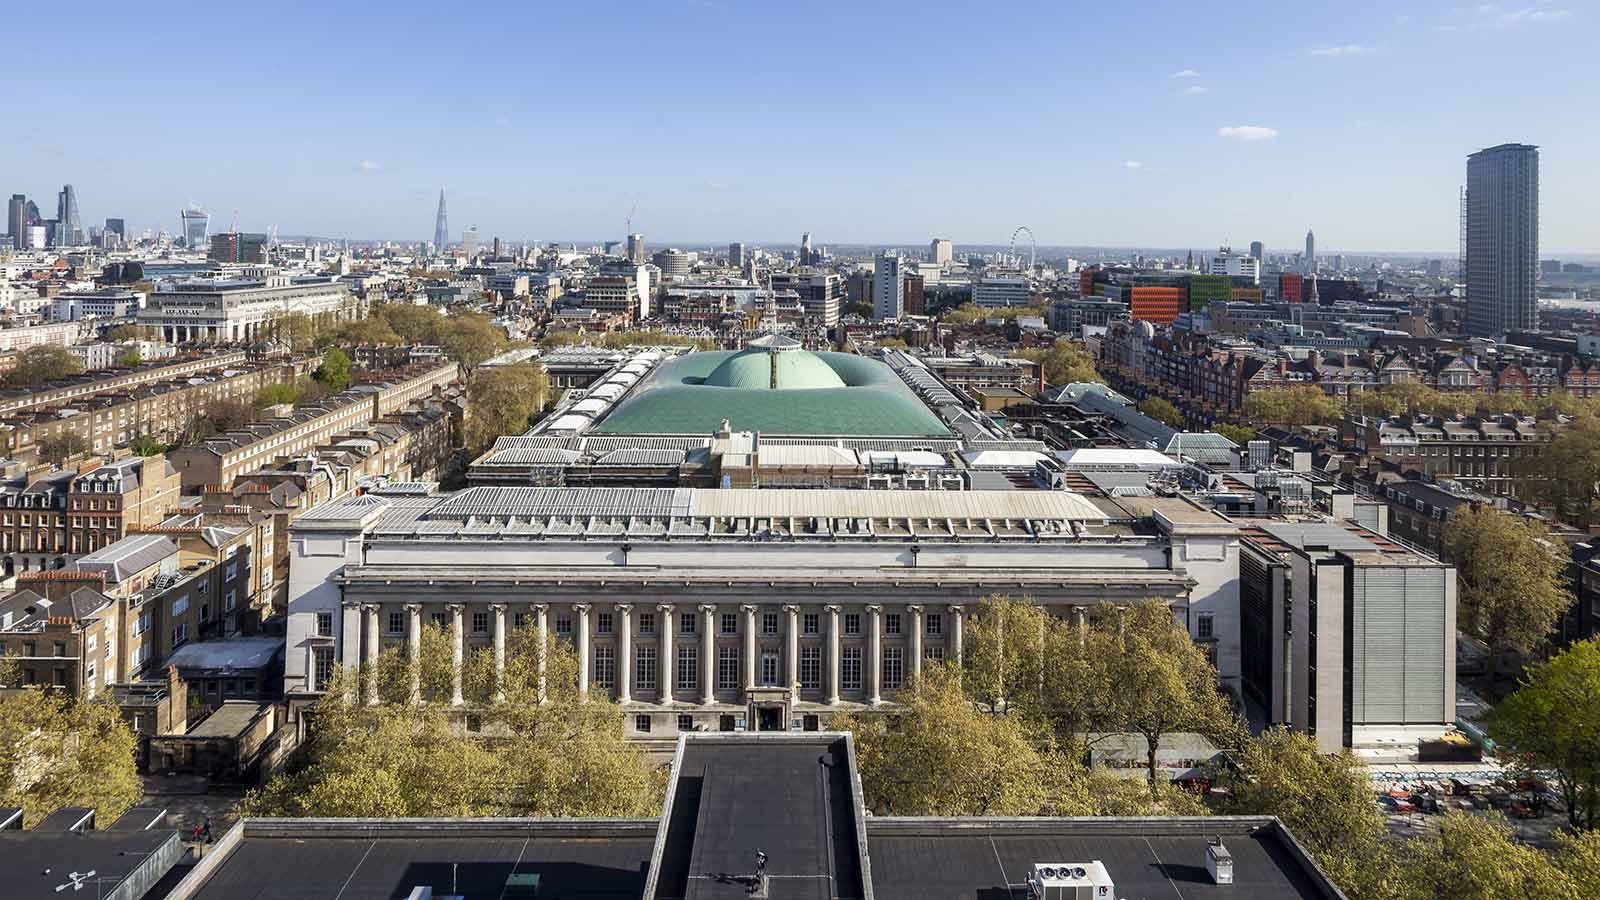 British Museum Building Exterior Aerial View - Mace Group